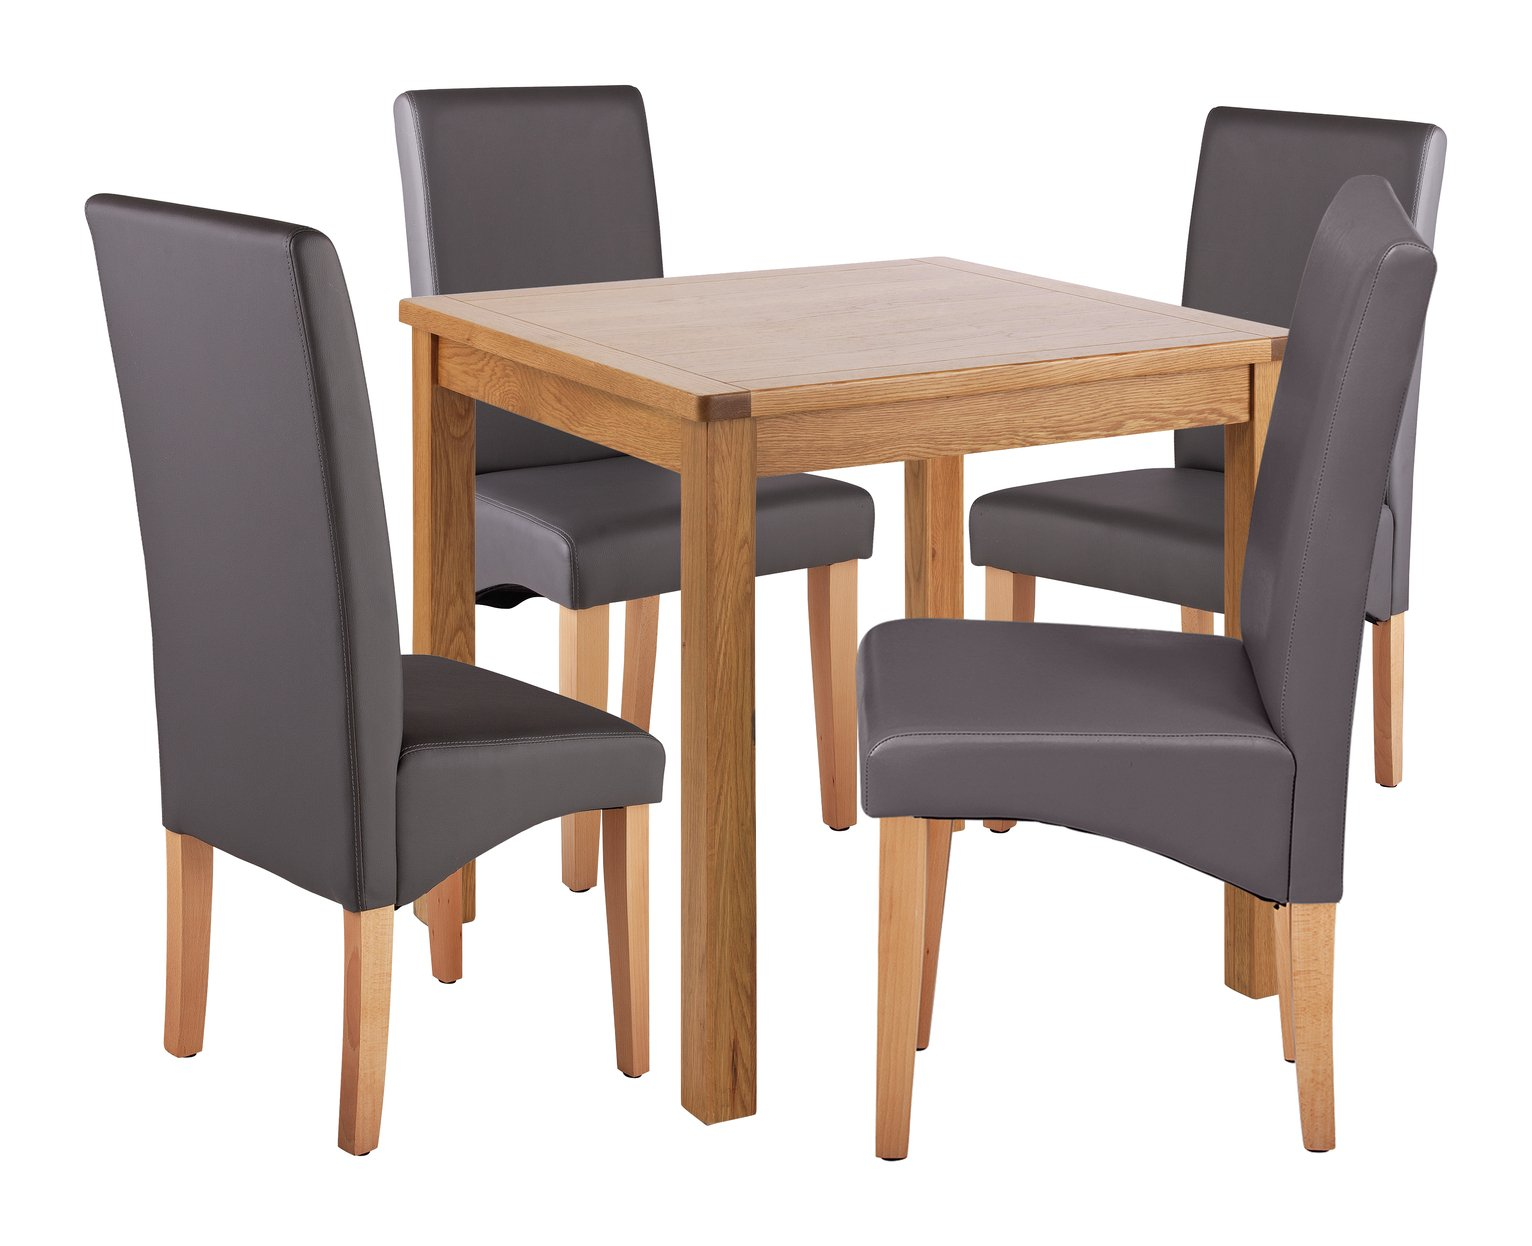 Space Saver Table And Chairs Argos: Hartley Glass Dining Table And 4 Charcoal Chairs